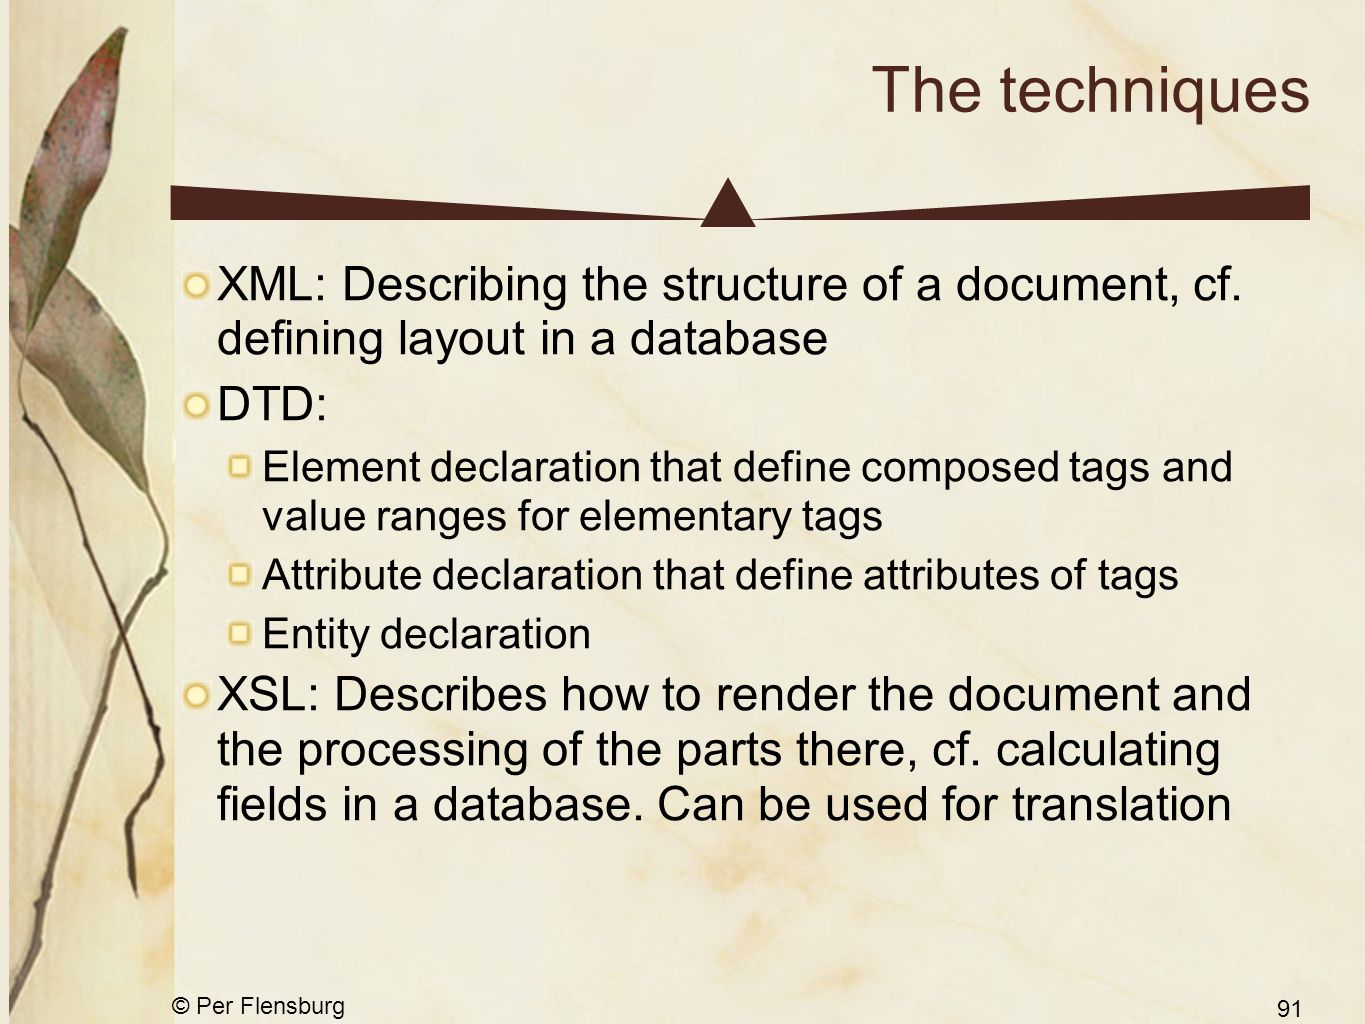 © Per Flensburg 91 The techniques XML: Describing the structure of a document, cf. defining layout in a database DTD: Element declaration that define